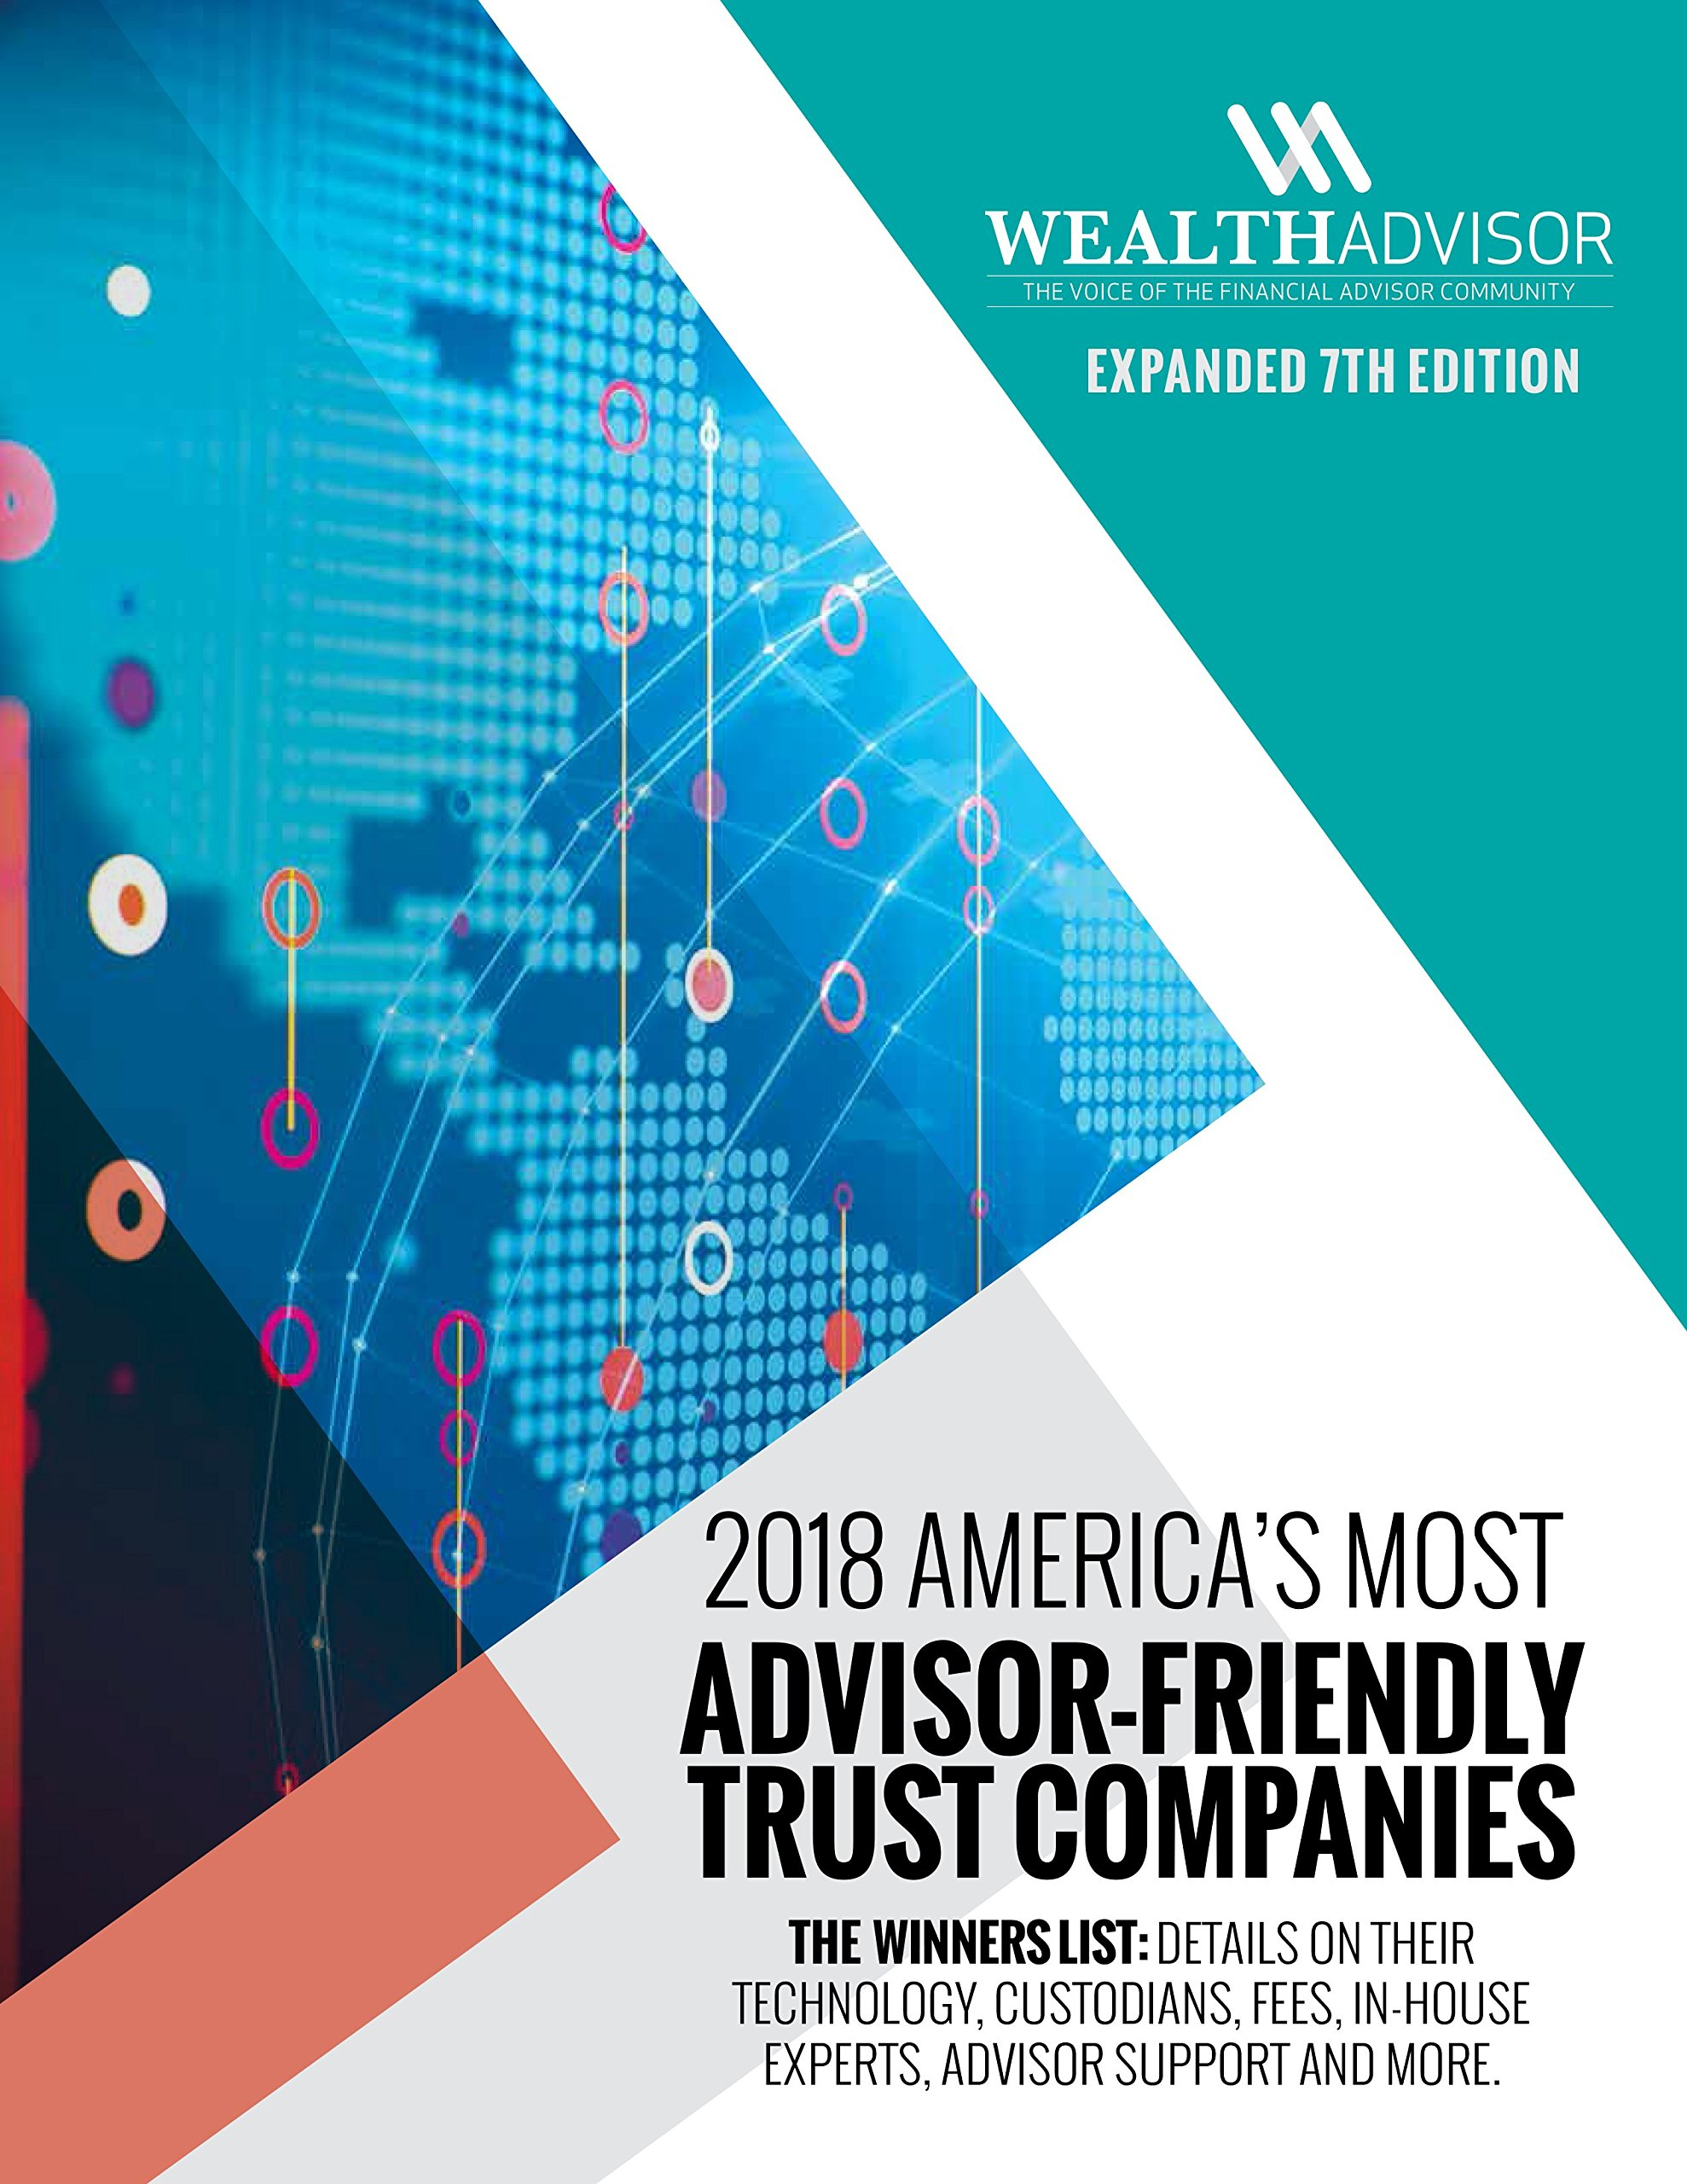 2018 America's Most Advisor-Friendly Trust Companies 7th Edition: The Winners List: Details On Their Technology, Custodians, Fees, In-House Experts, Advisor Support and More